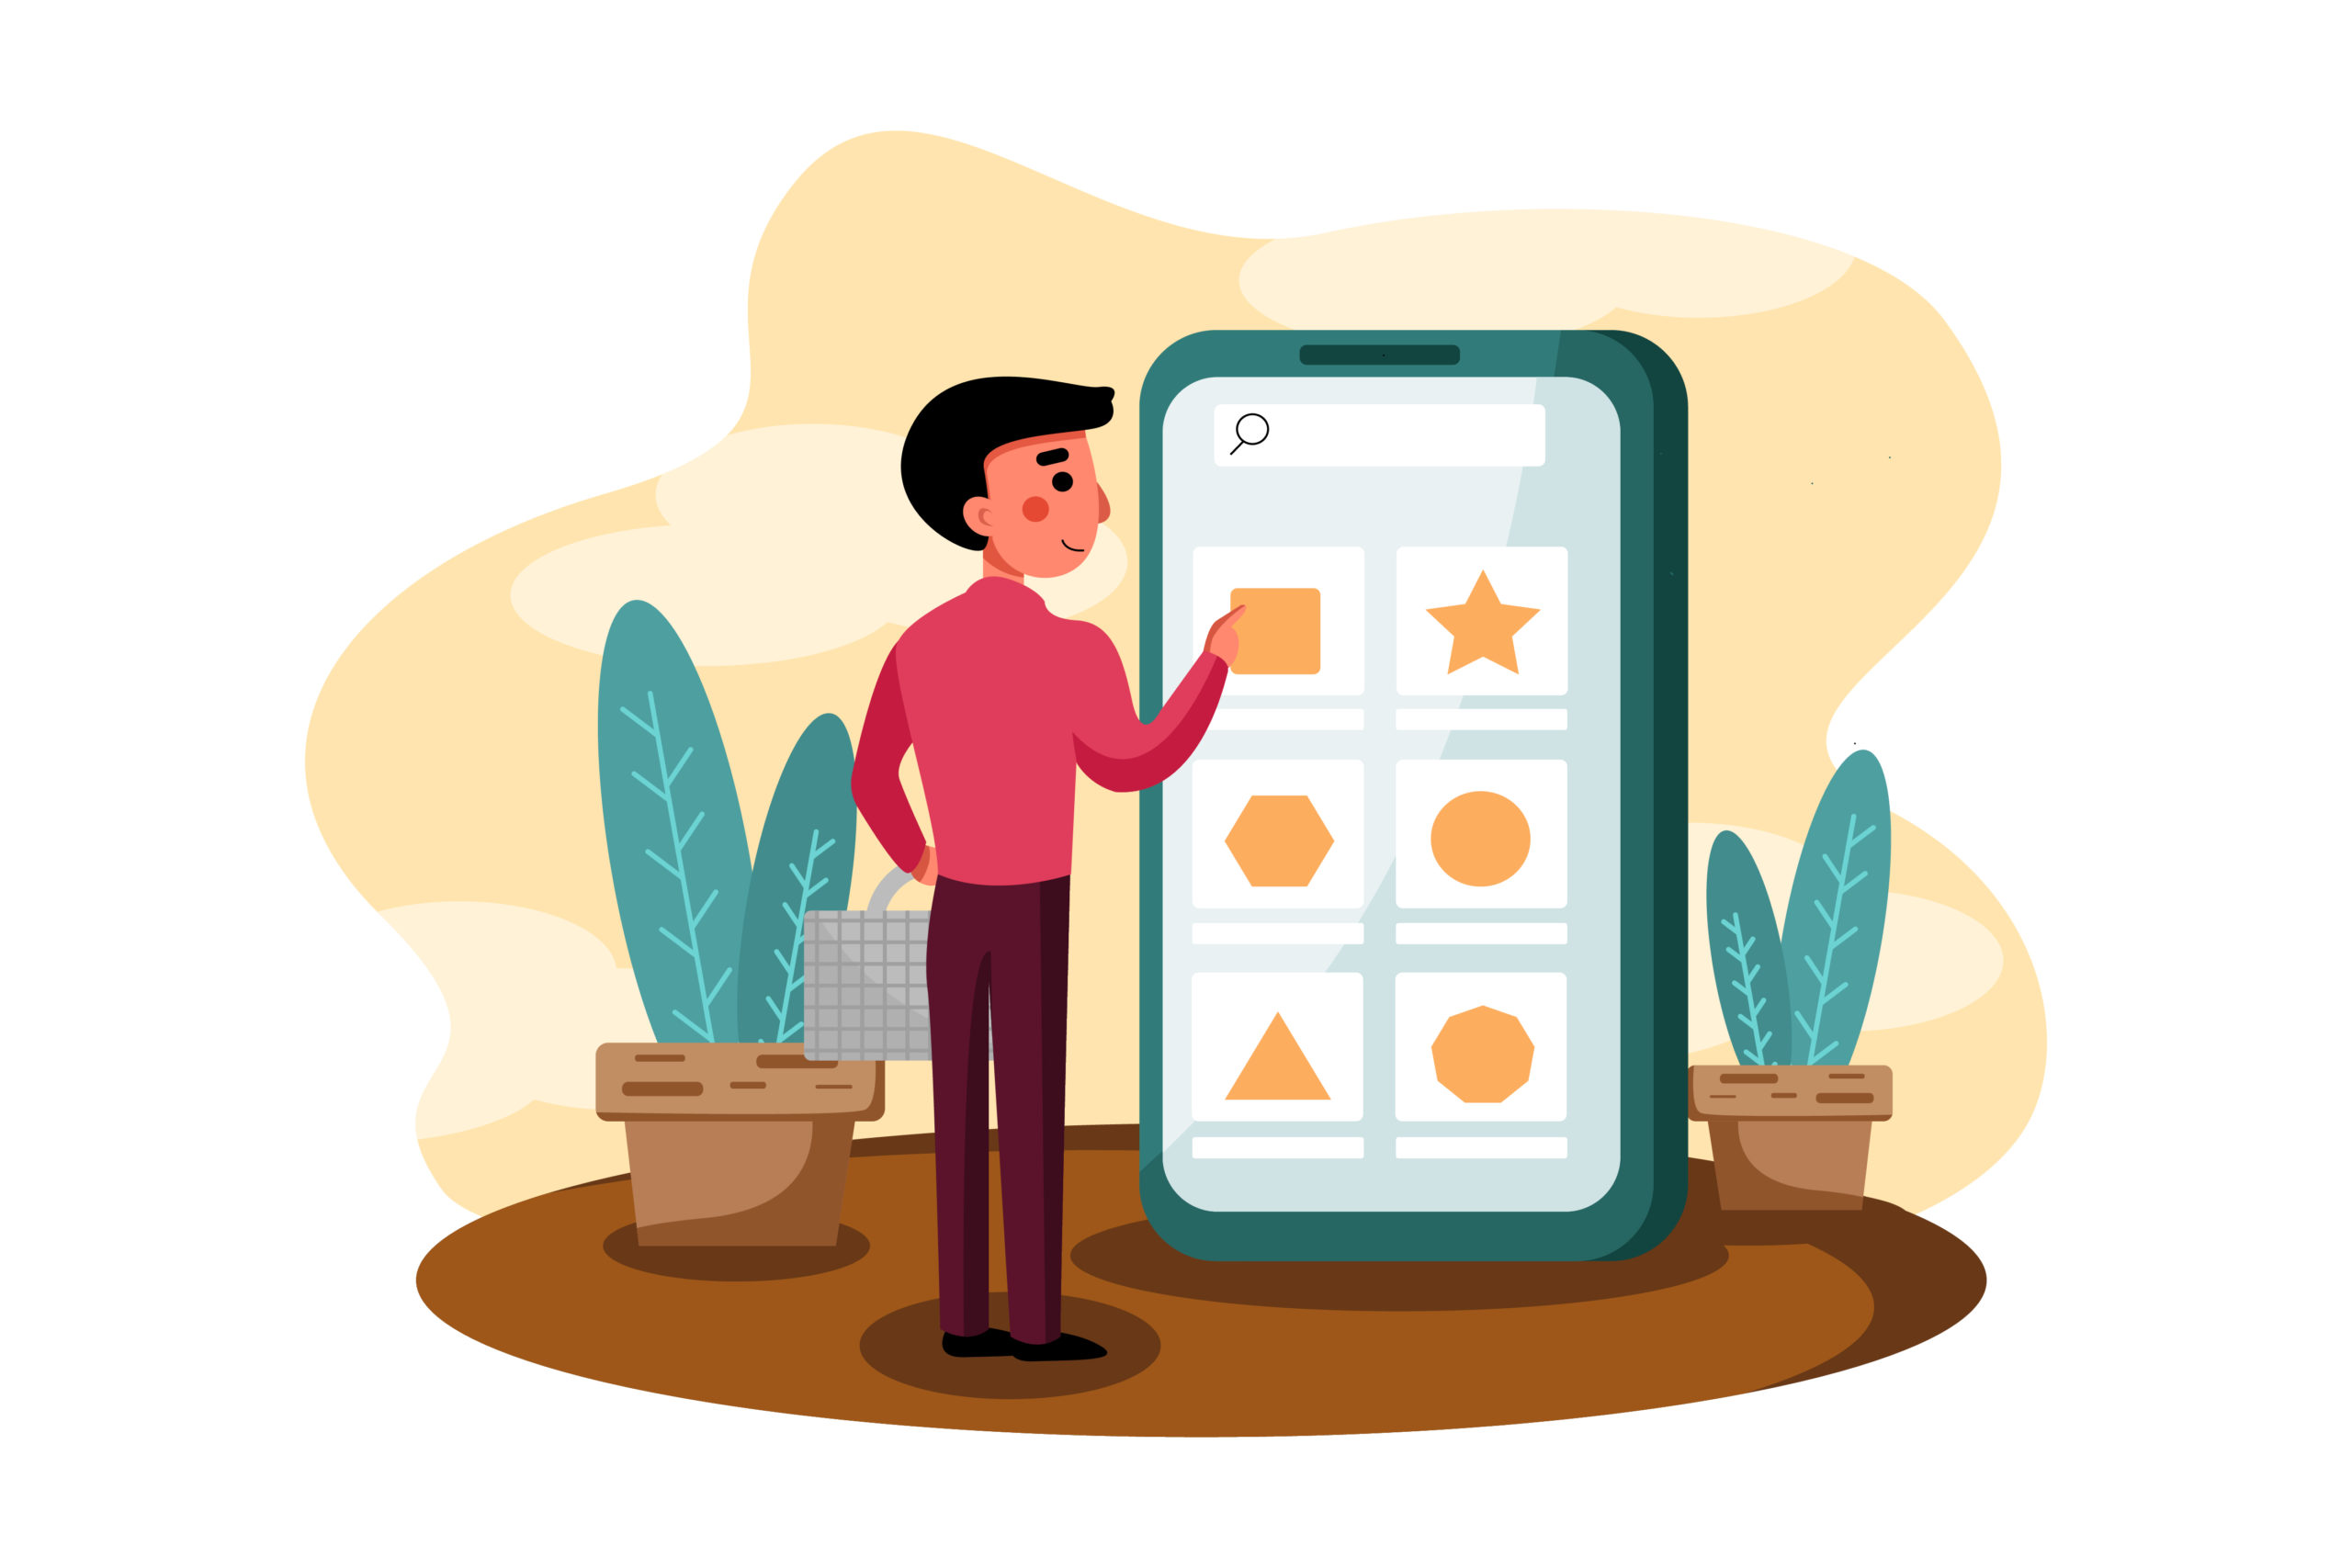 illustration of a man using a phone to make a choice on an e-commerce website